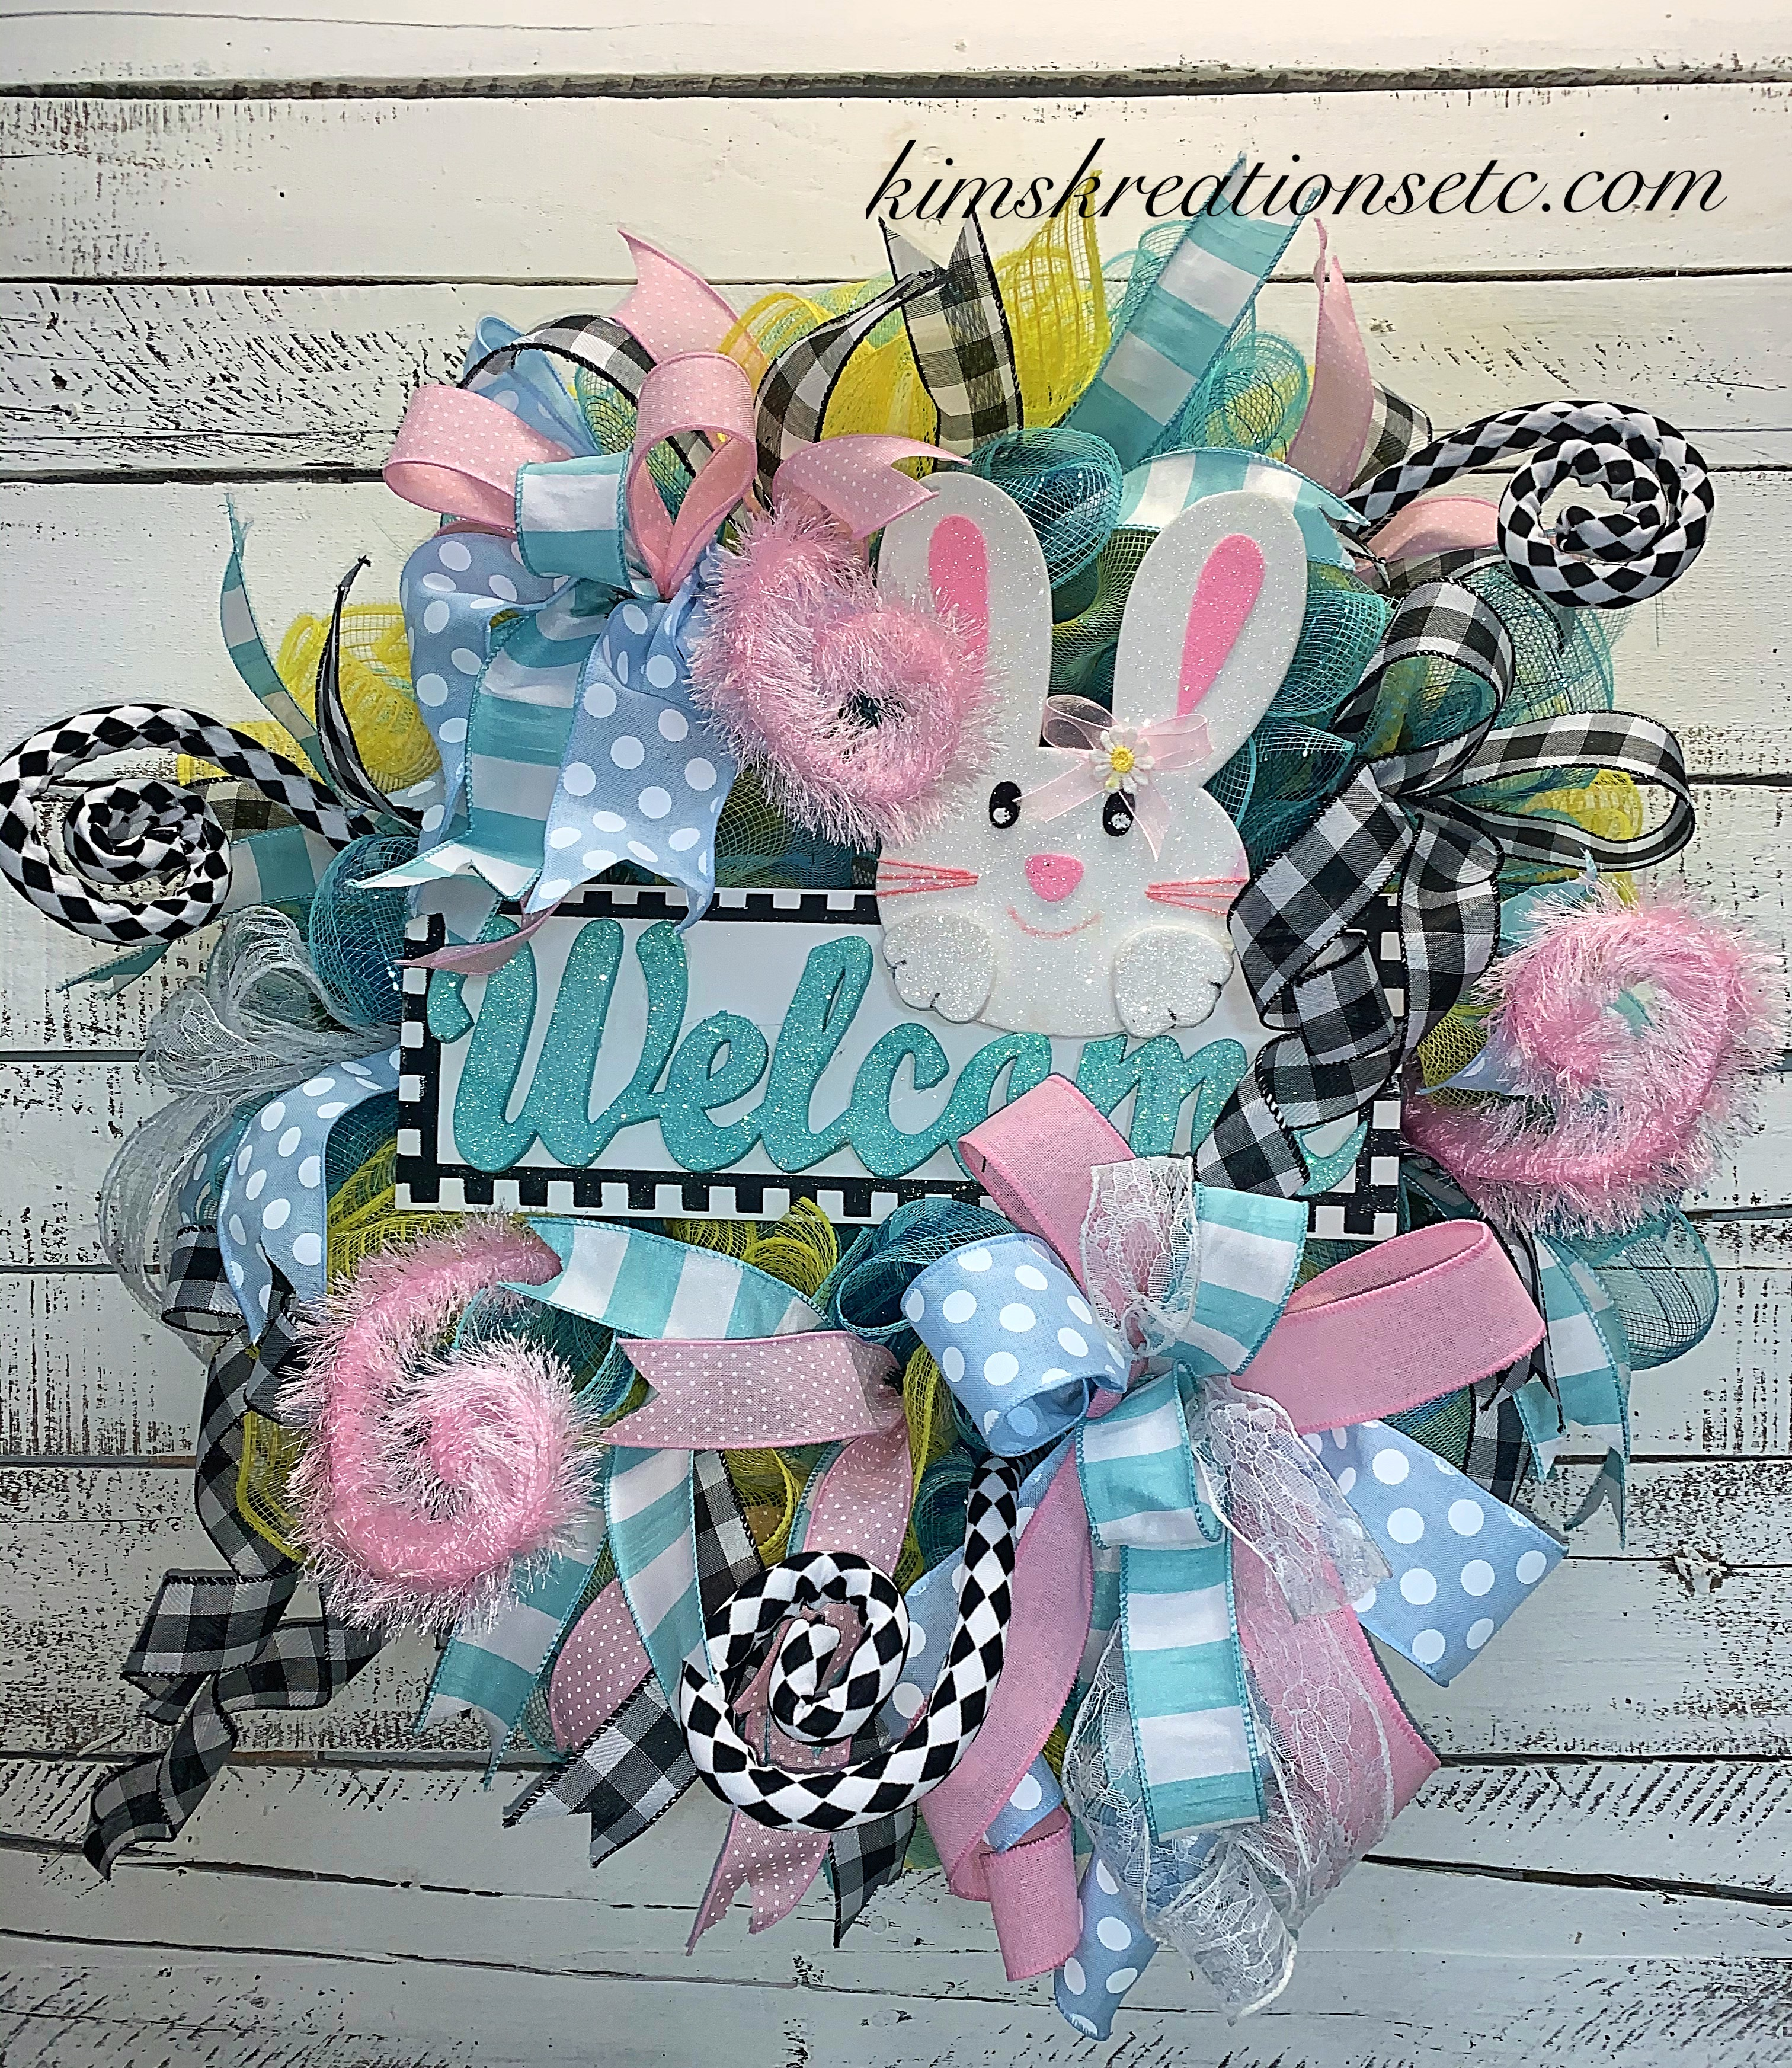 Easter Wreath Free Shipping Easter Door Wreath Spring Wreath Easter Welcome Wreath Pink Blue And Yellow Wreath Front Door Wreath For Easter Easter Decor Easter Deco Mesh Wreath Handmade Wreaths Wreaths For